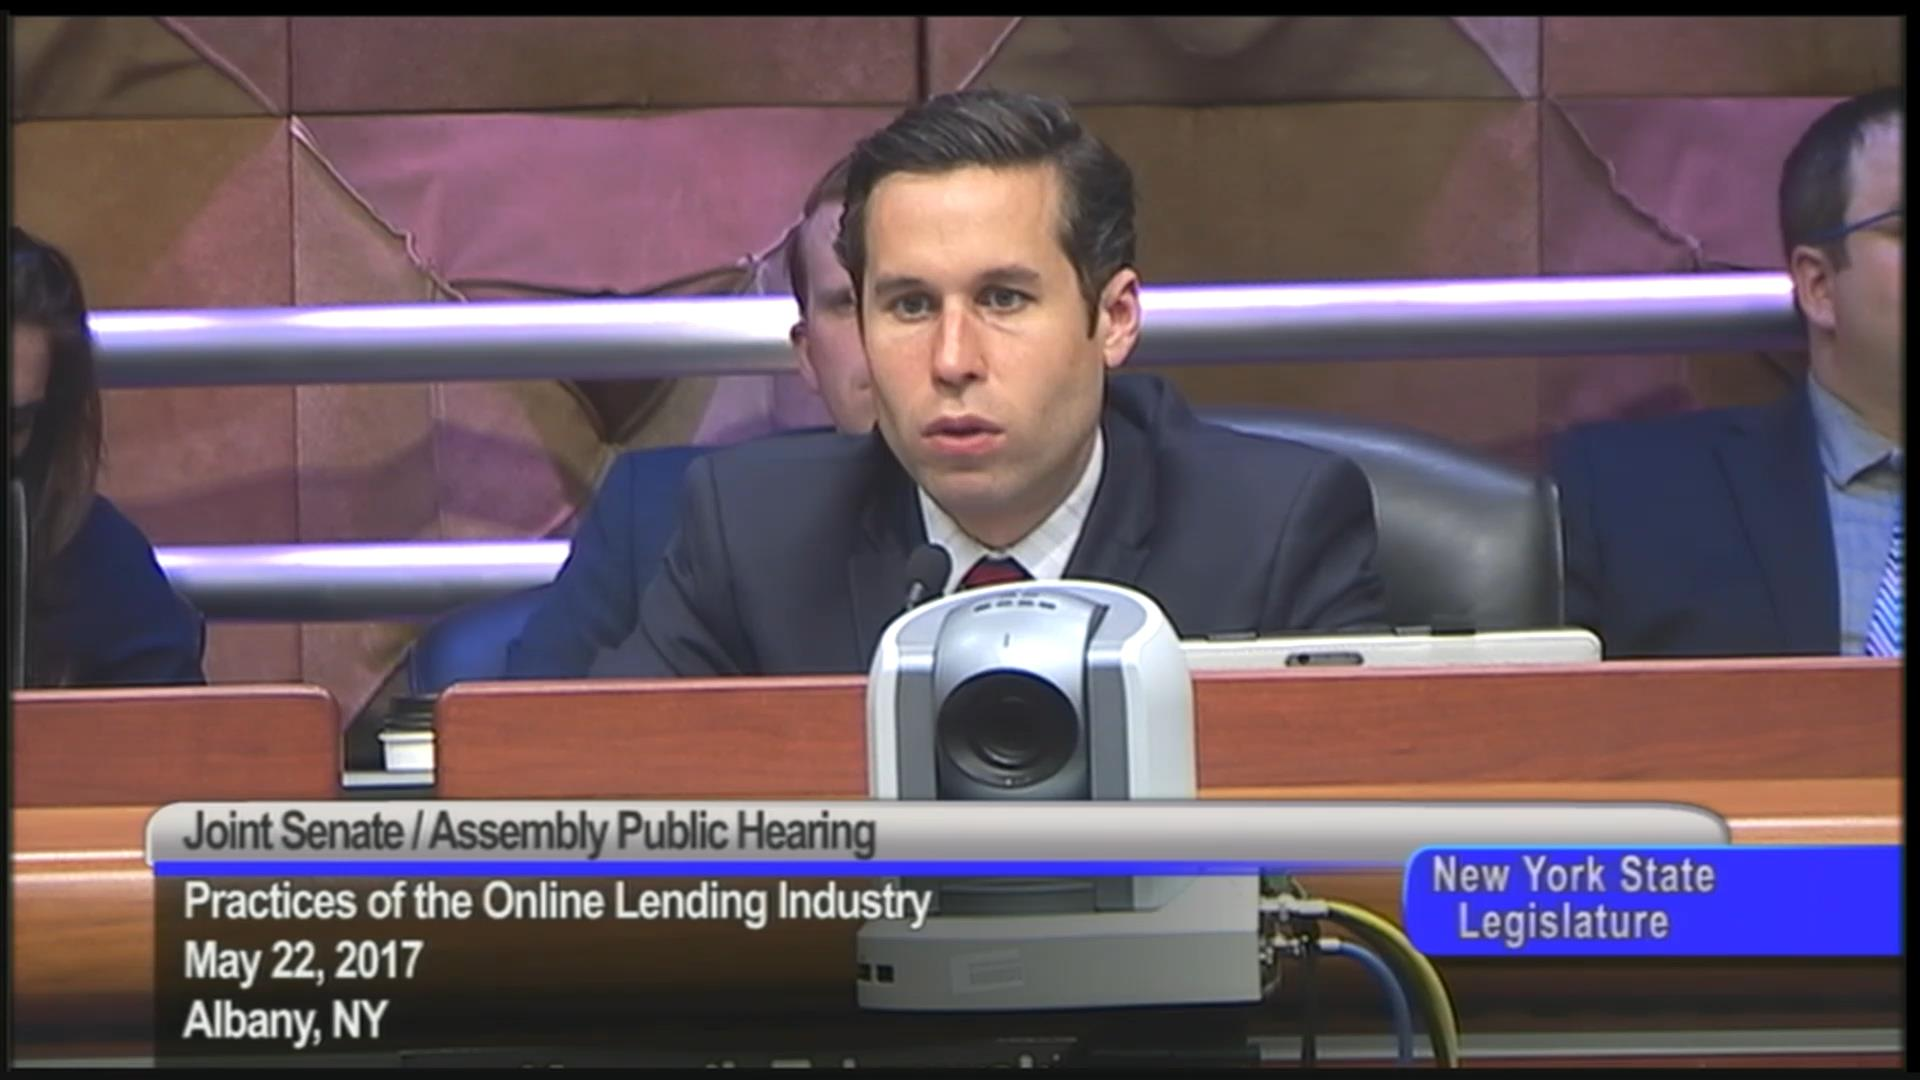 Questions at Online Lending Industry Hearing